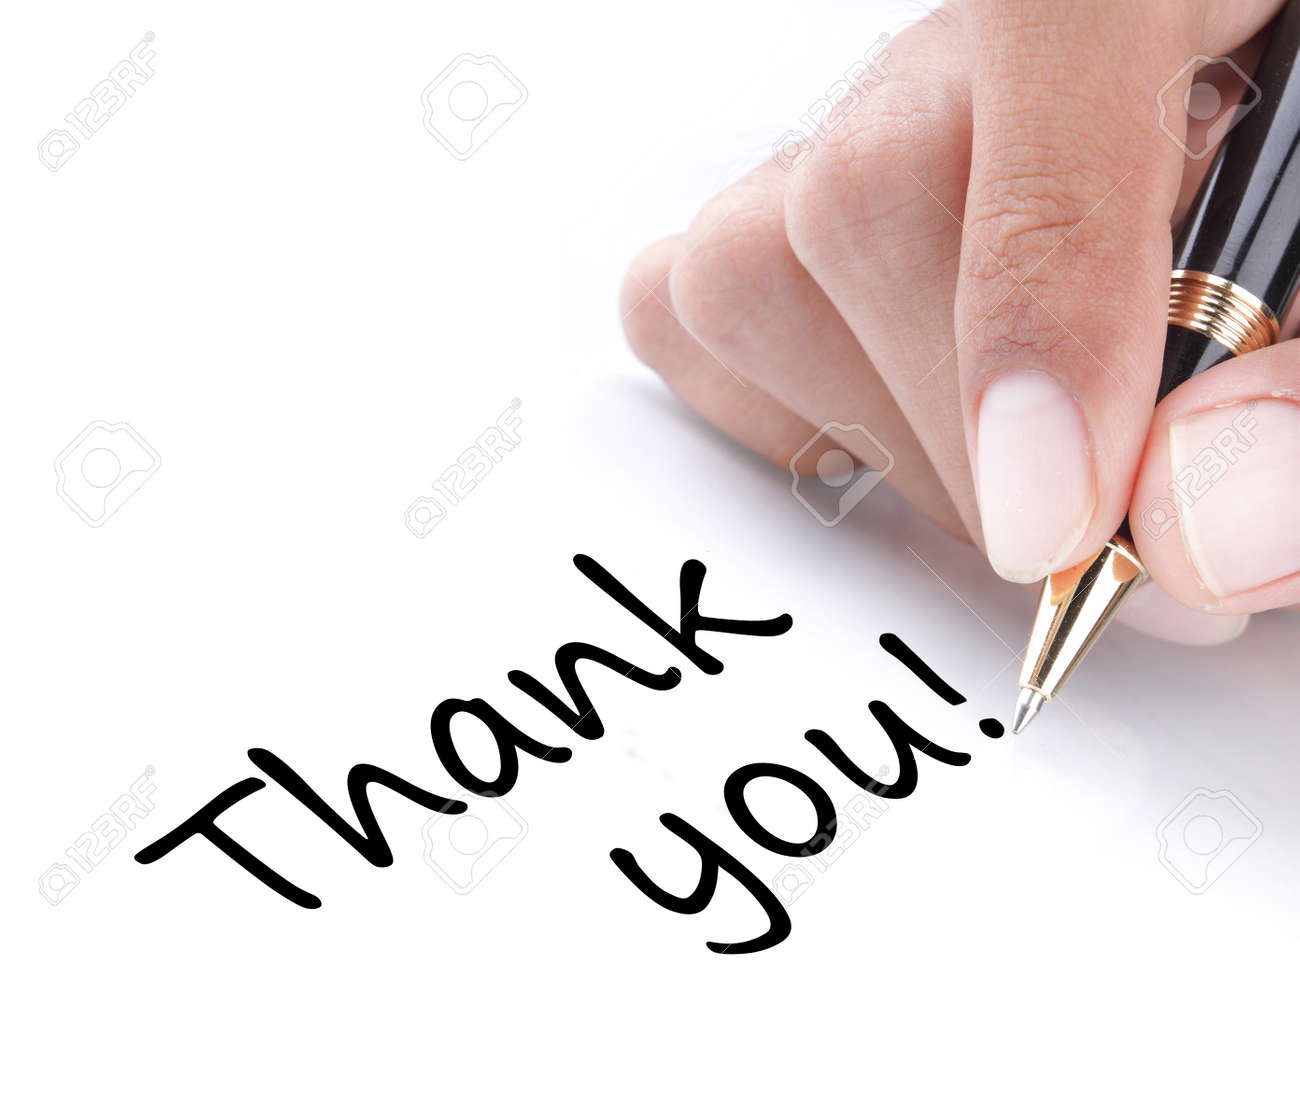 Hand writing thank you, isolated on white background - 9899750